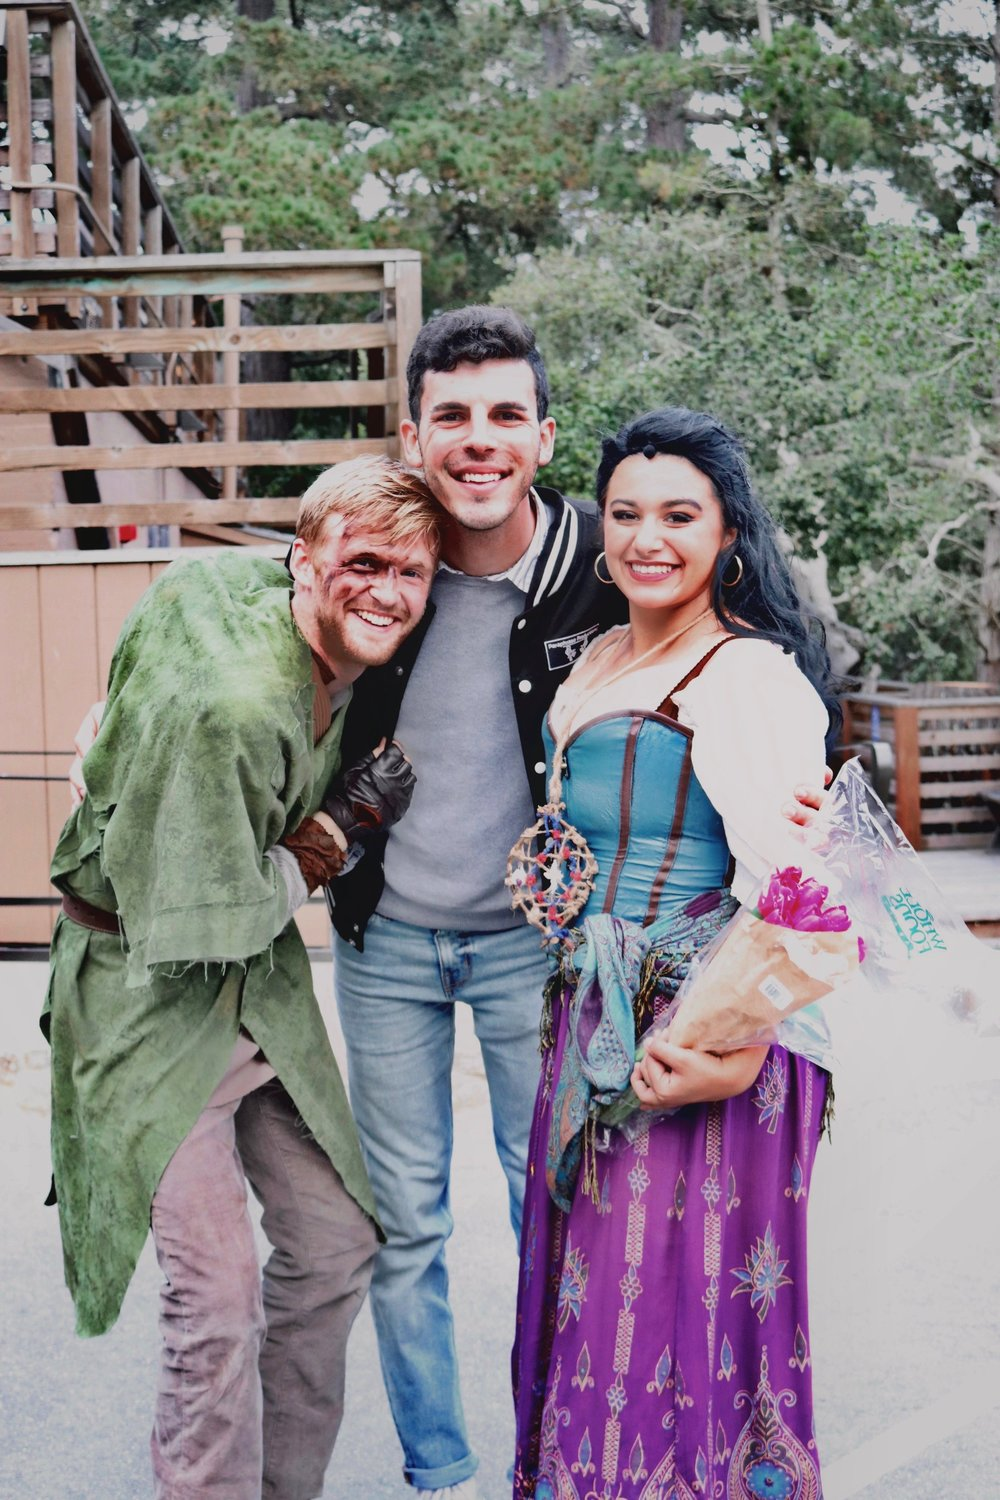 Actors Malakai Howard and Taylor Perez Rhoades with director Andrew Marderian after a performance of  The Hunchback of Notre Dame  (July 2018).